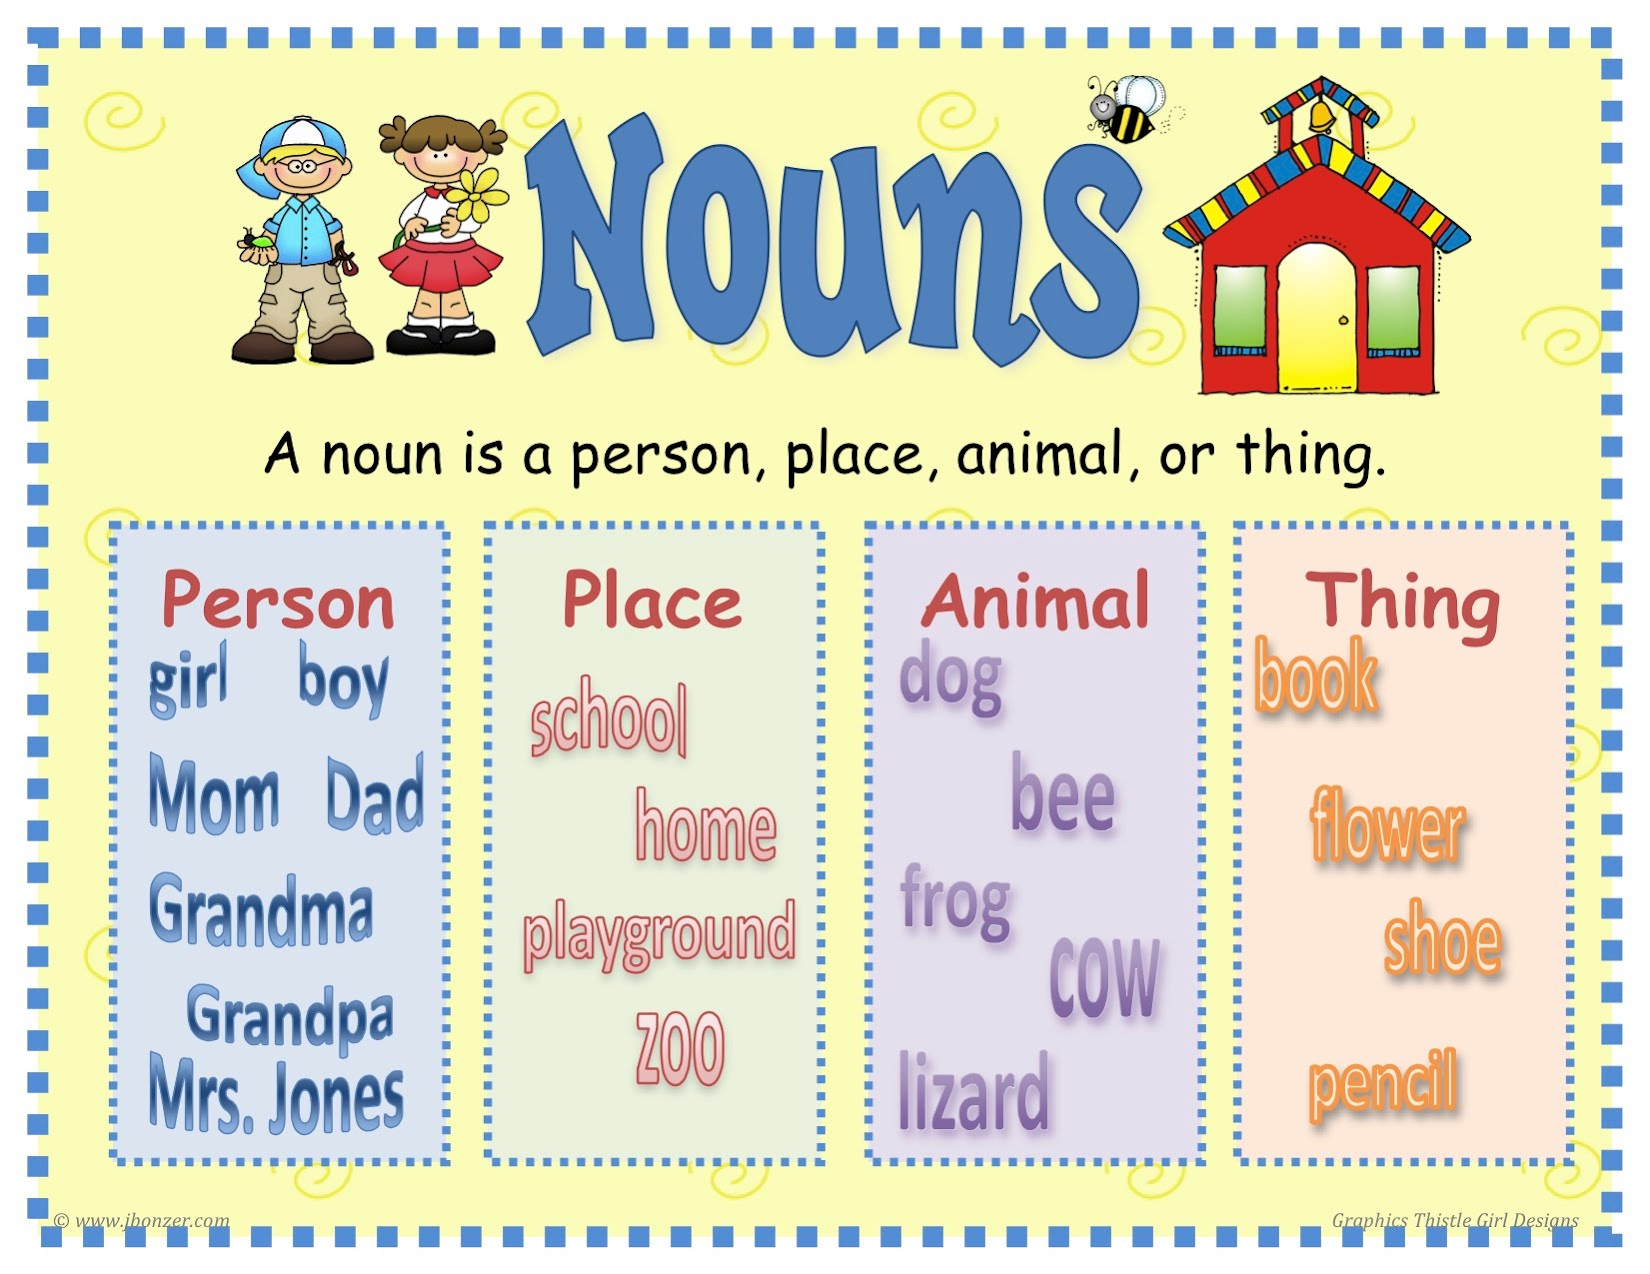 Definition of Nouns - Fun with English! Grade 3